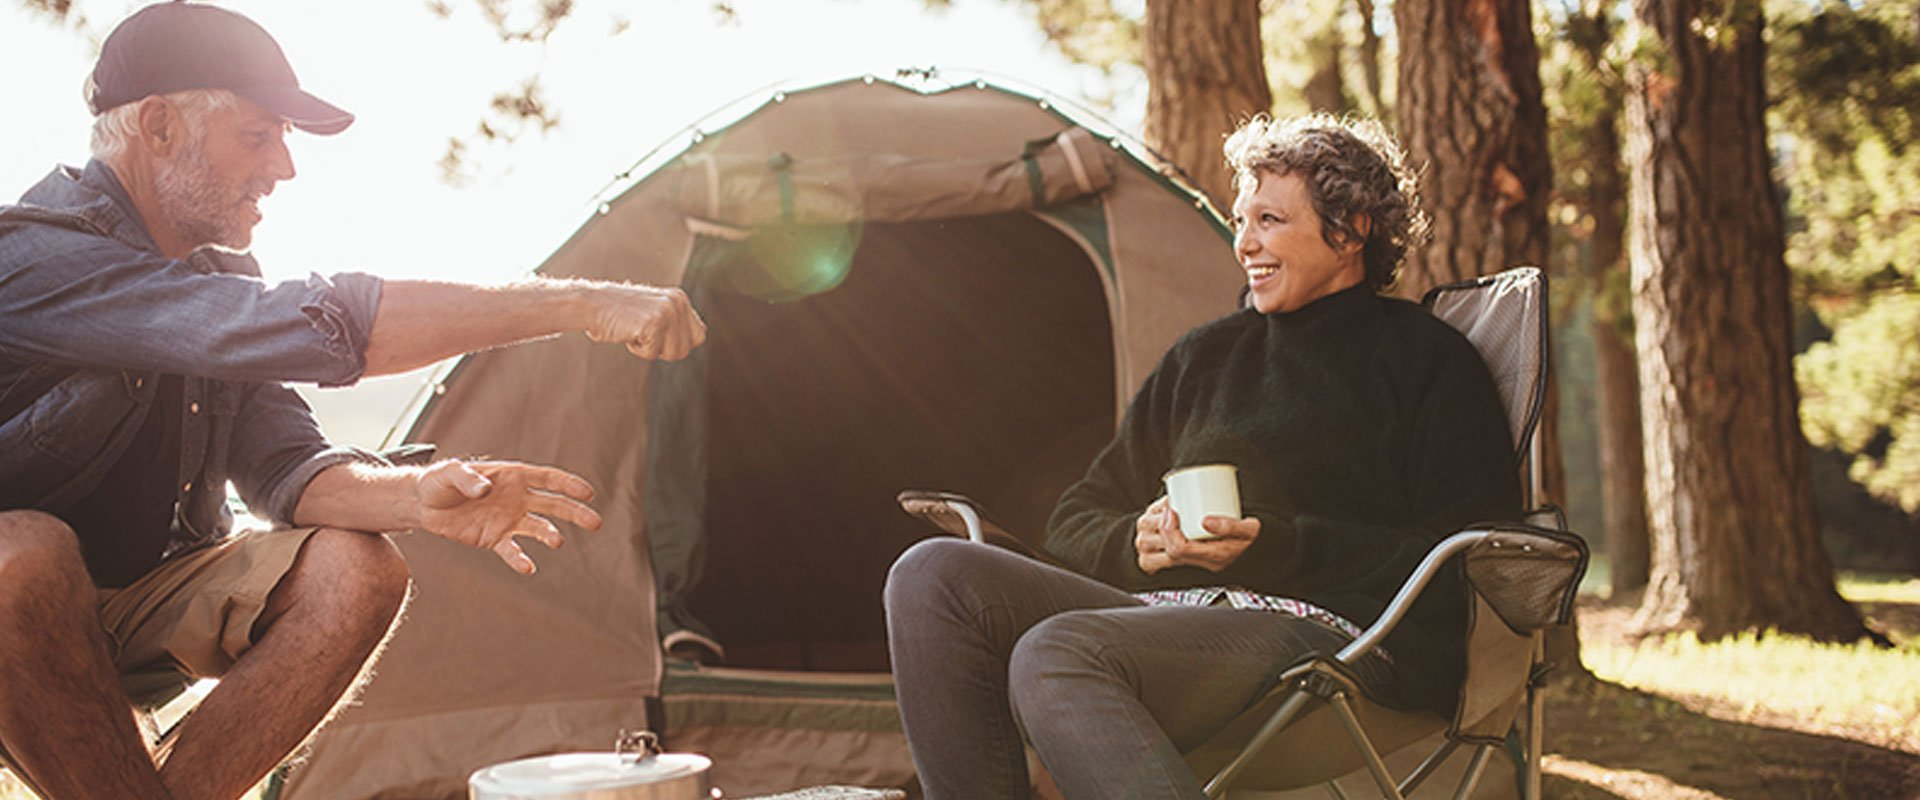 Senior couple camping date